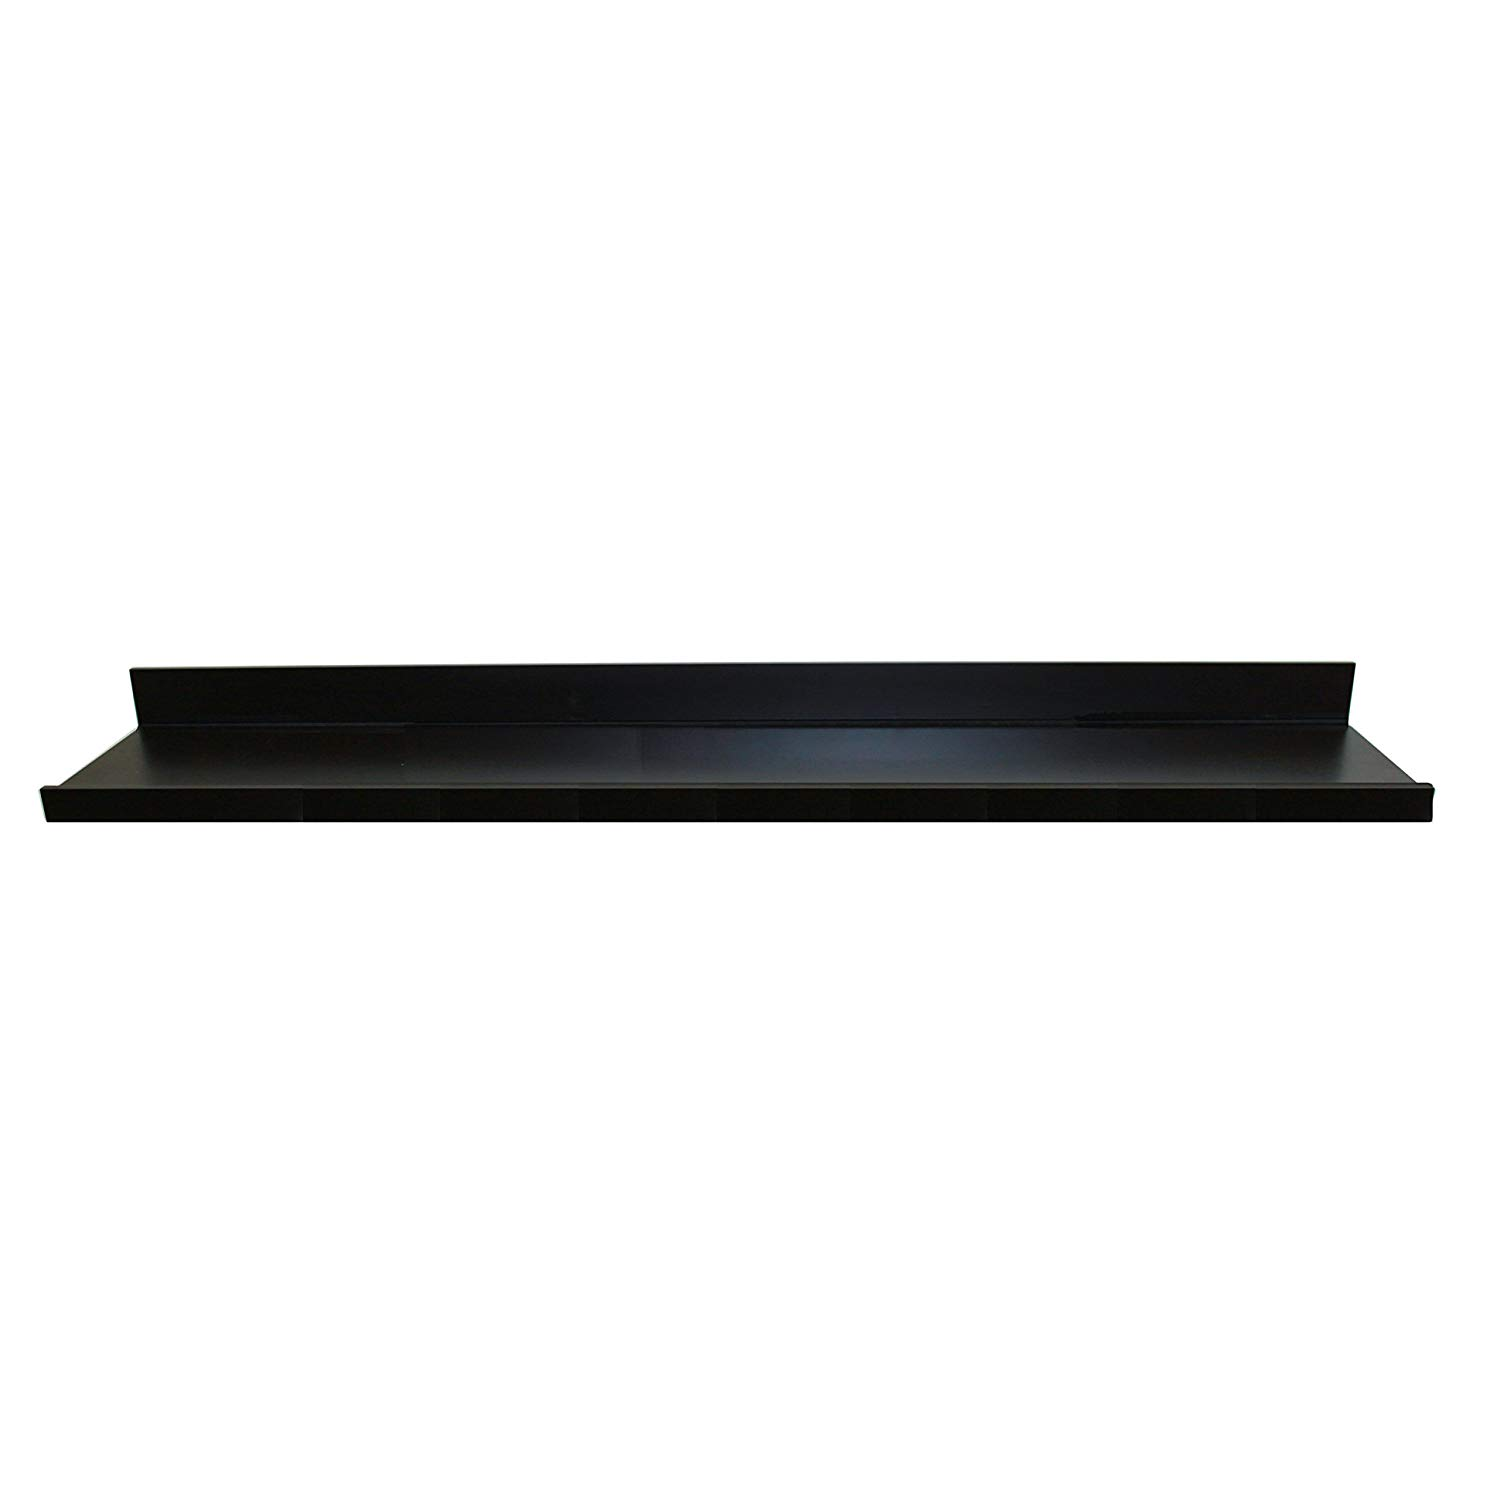 inplace shelving floating wall shelf with inch deep ture ledge black wide high home improvement fireplace surround and mantle pine unit computer desk under space corner display